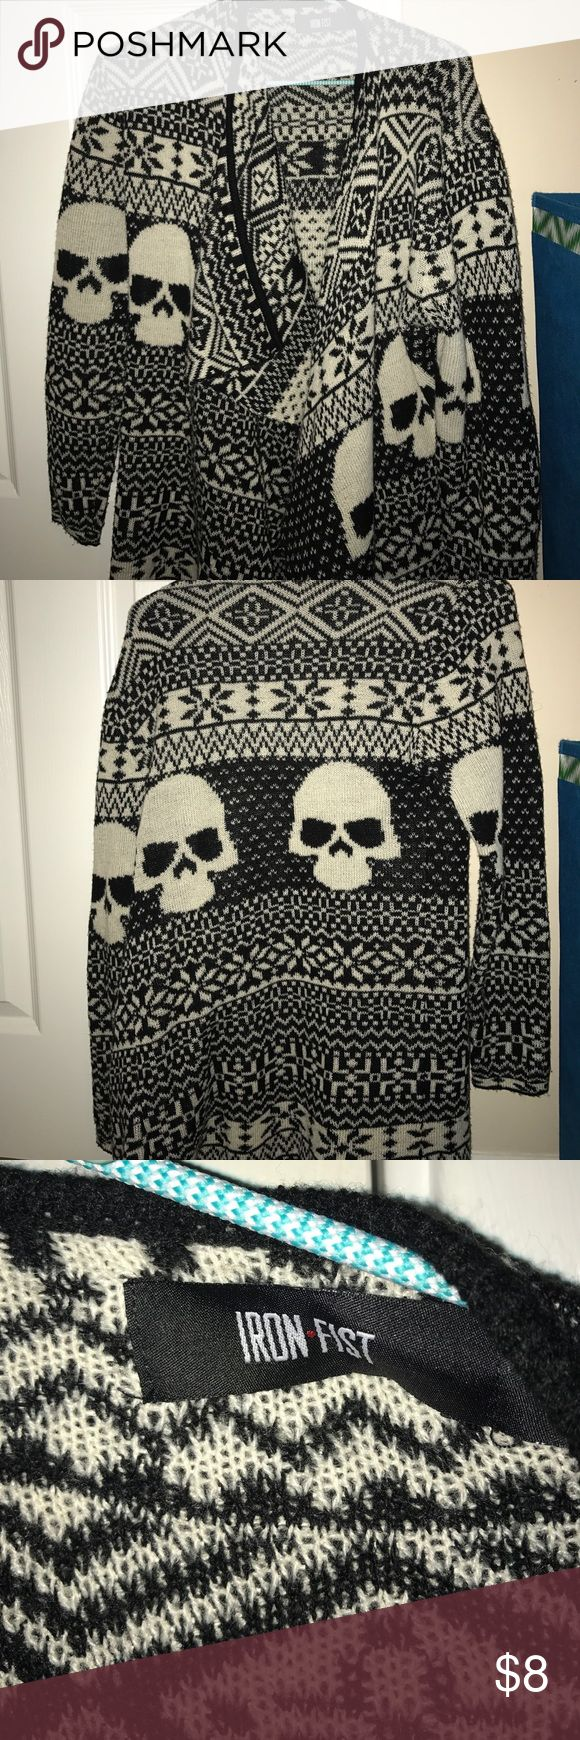 HOT TOPIC black and white tribal skull sweater super cute and cozy sweater from hot topic in brand new condition Hot Topic Sweaters Cardigans